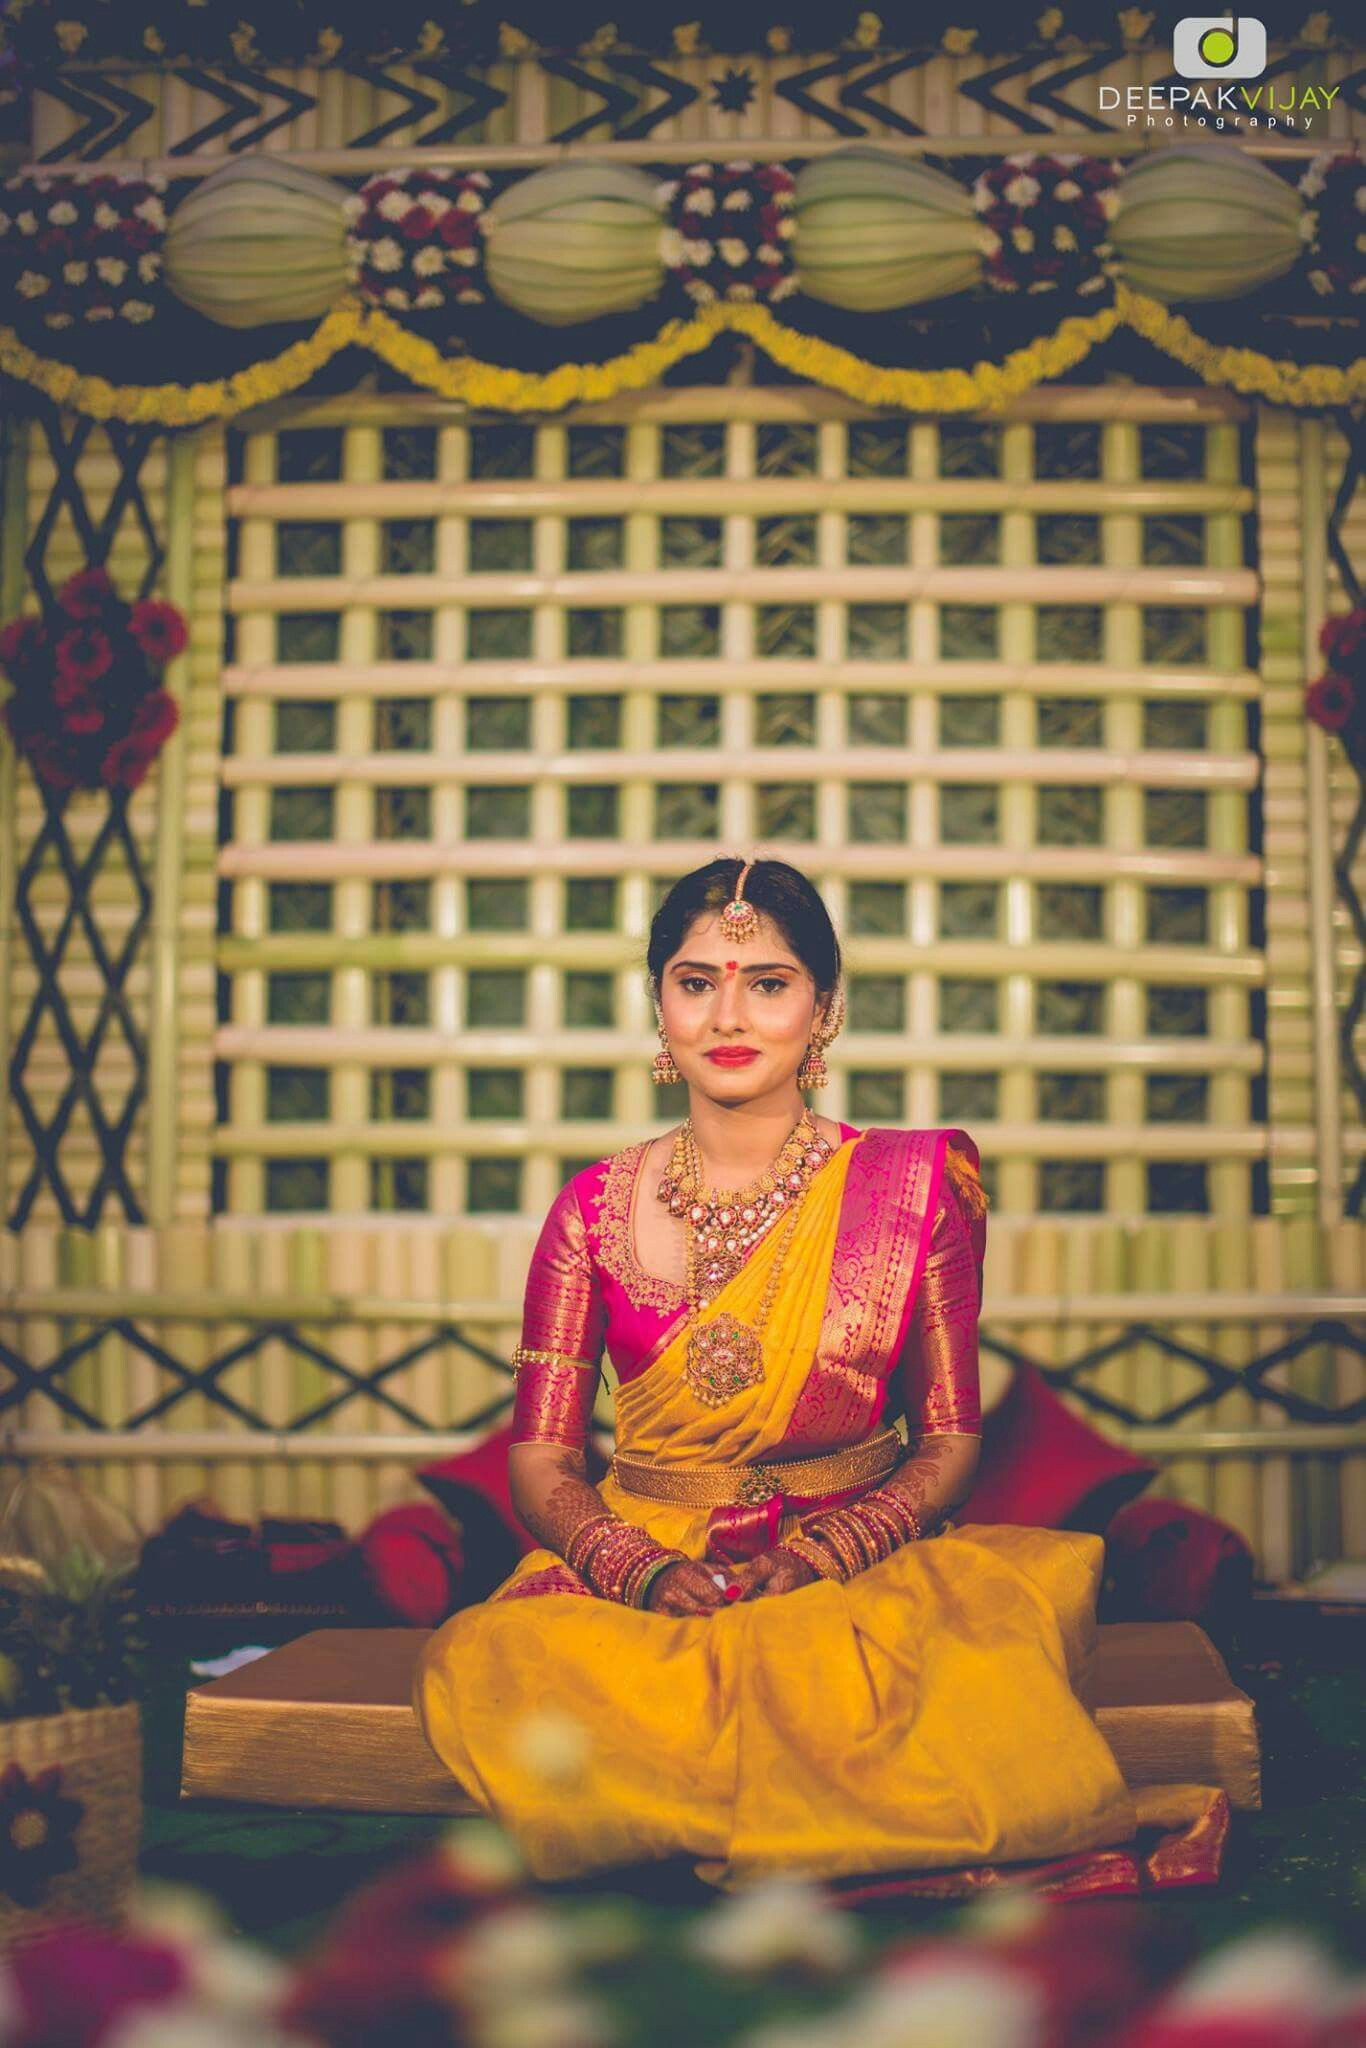 South Indian Bride Gold Indian Bridal Jewelry Temple Jewelry Jhumkis Yellow And Pink Silk South Indian Bride Saree Indian Bridal Sarees Wedding Saree Indian